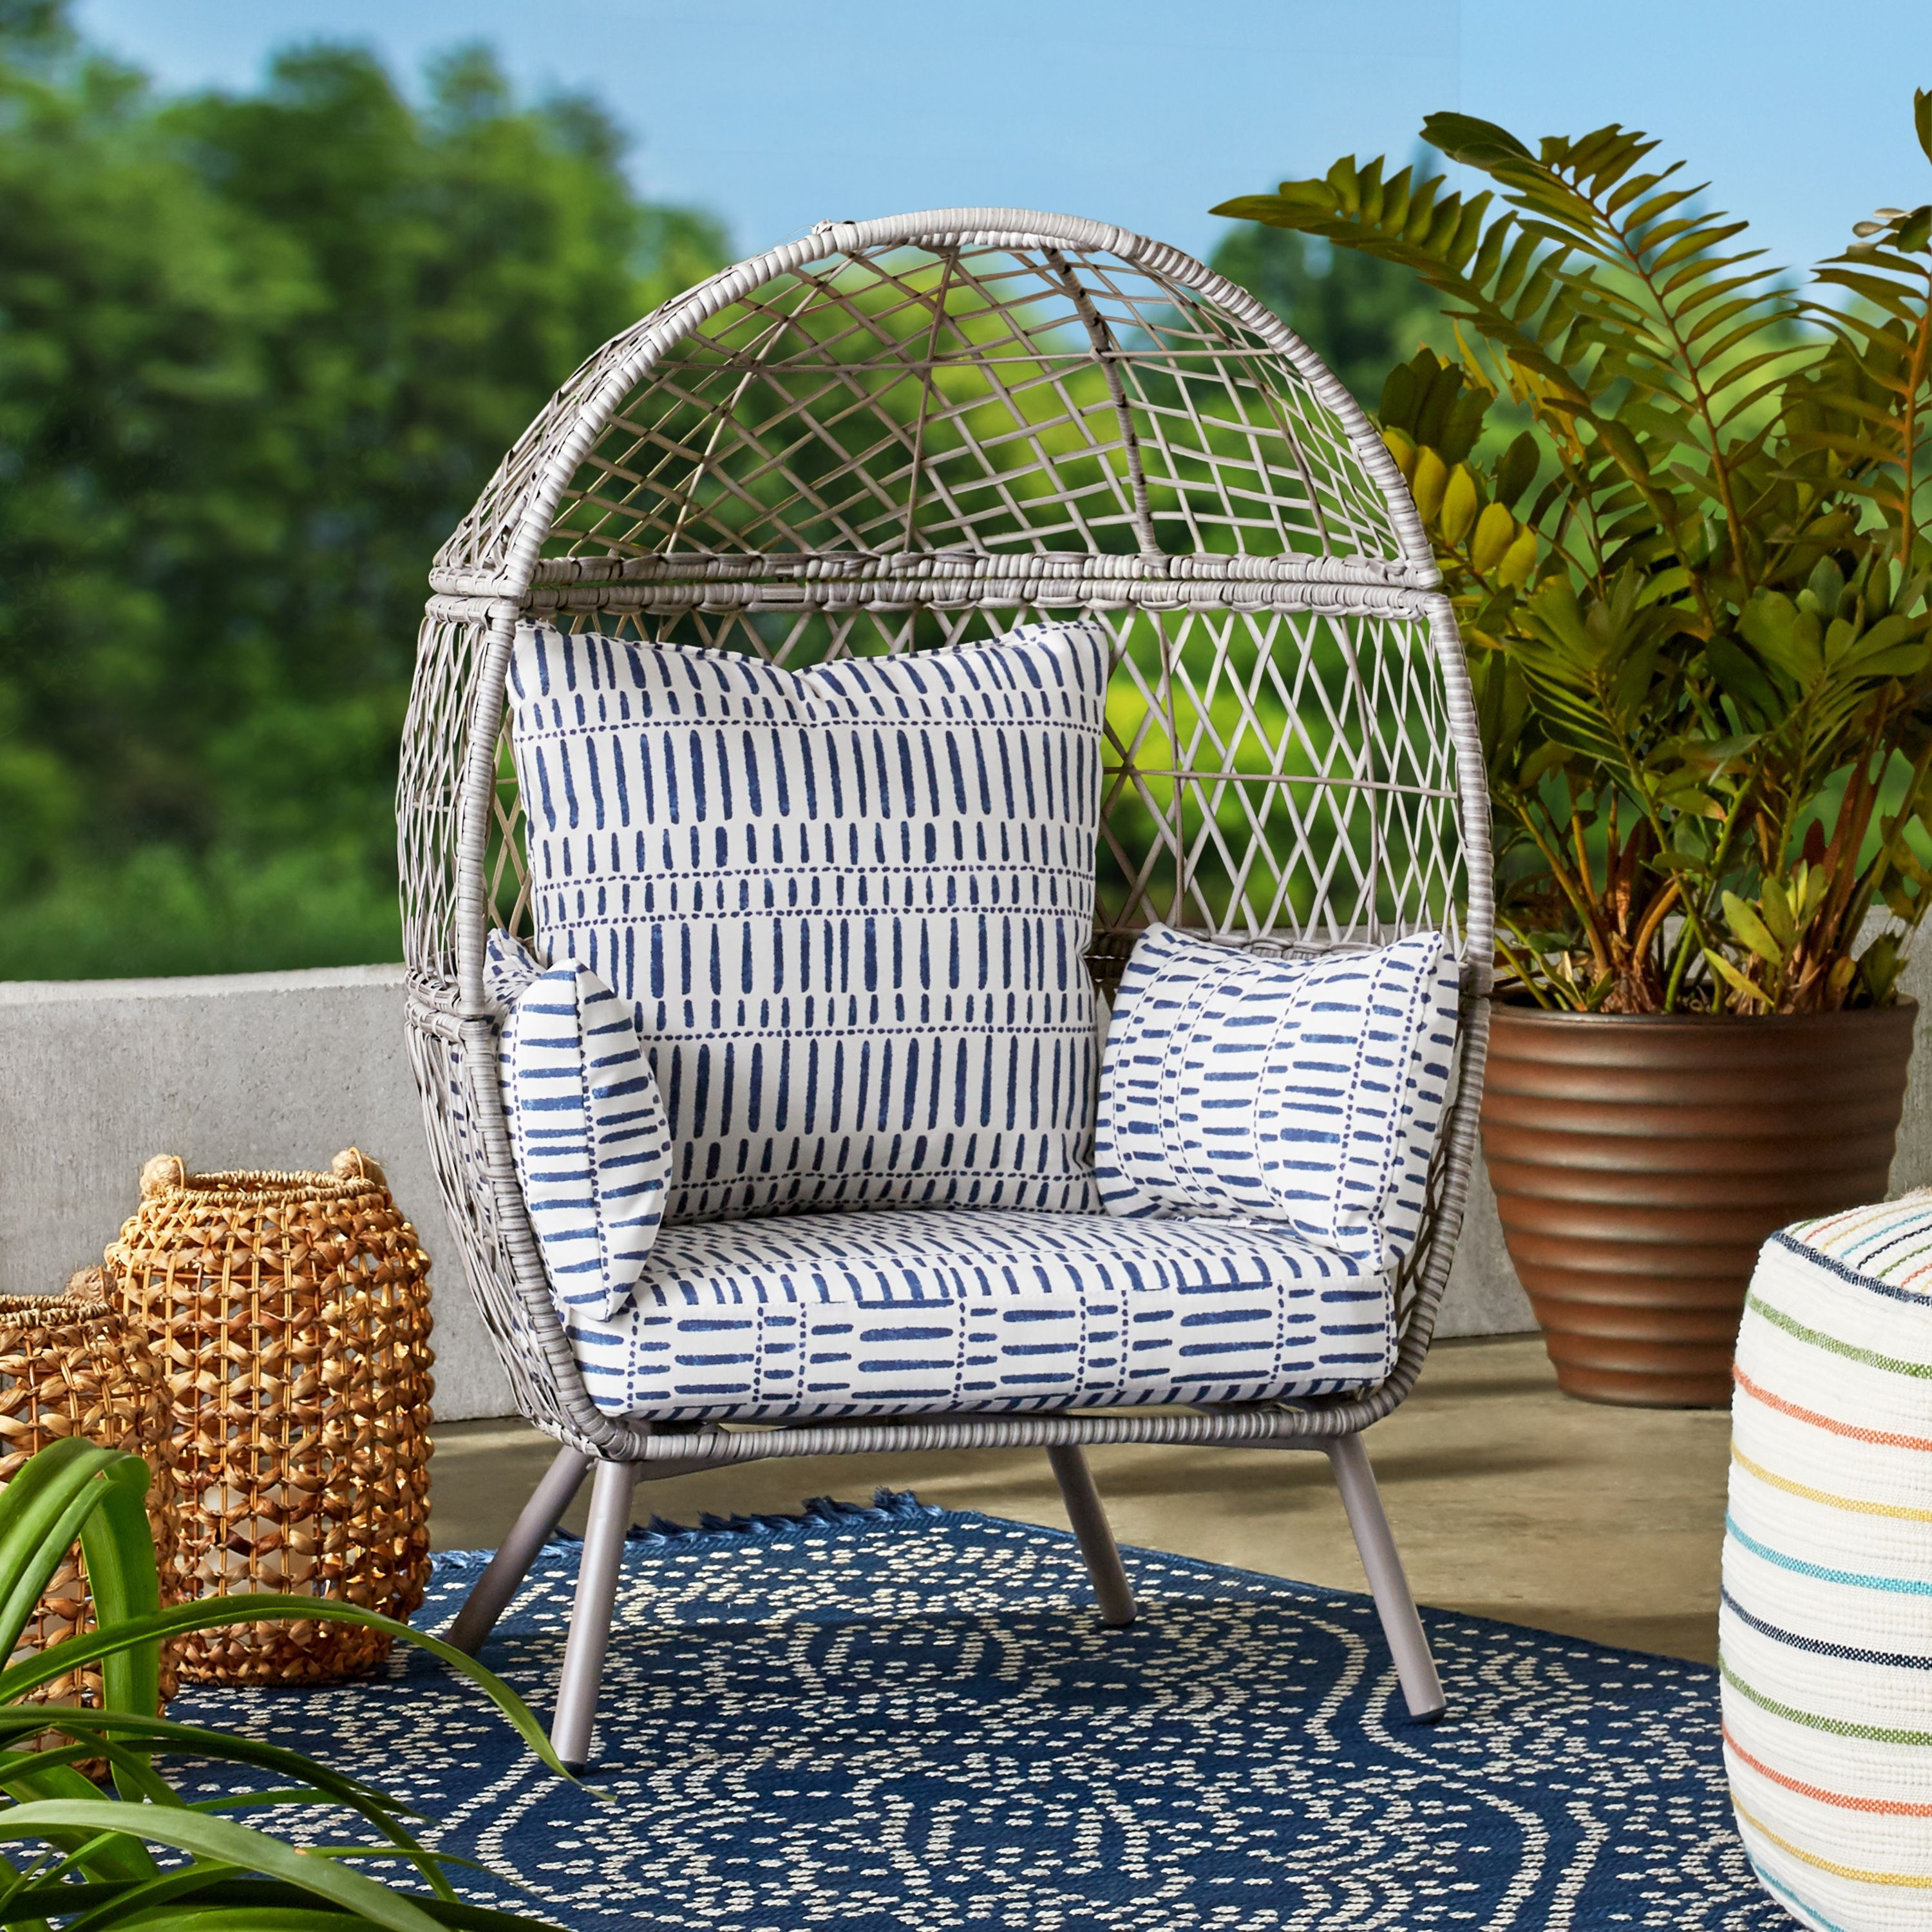 Free 2 Day Shipping Buy Better Homes Gardens Ventura Outdoor Kid S Stationary Egg Chair Gray At Walmart Co In 2021 Egg Chair Kids Stationary Better Homes Gardens